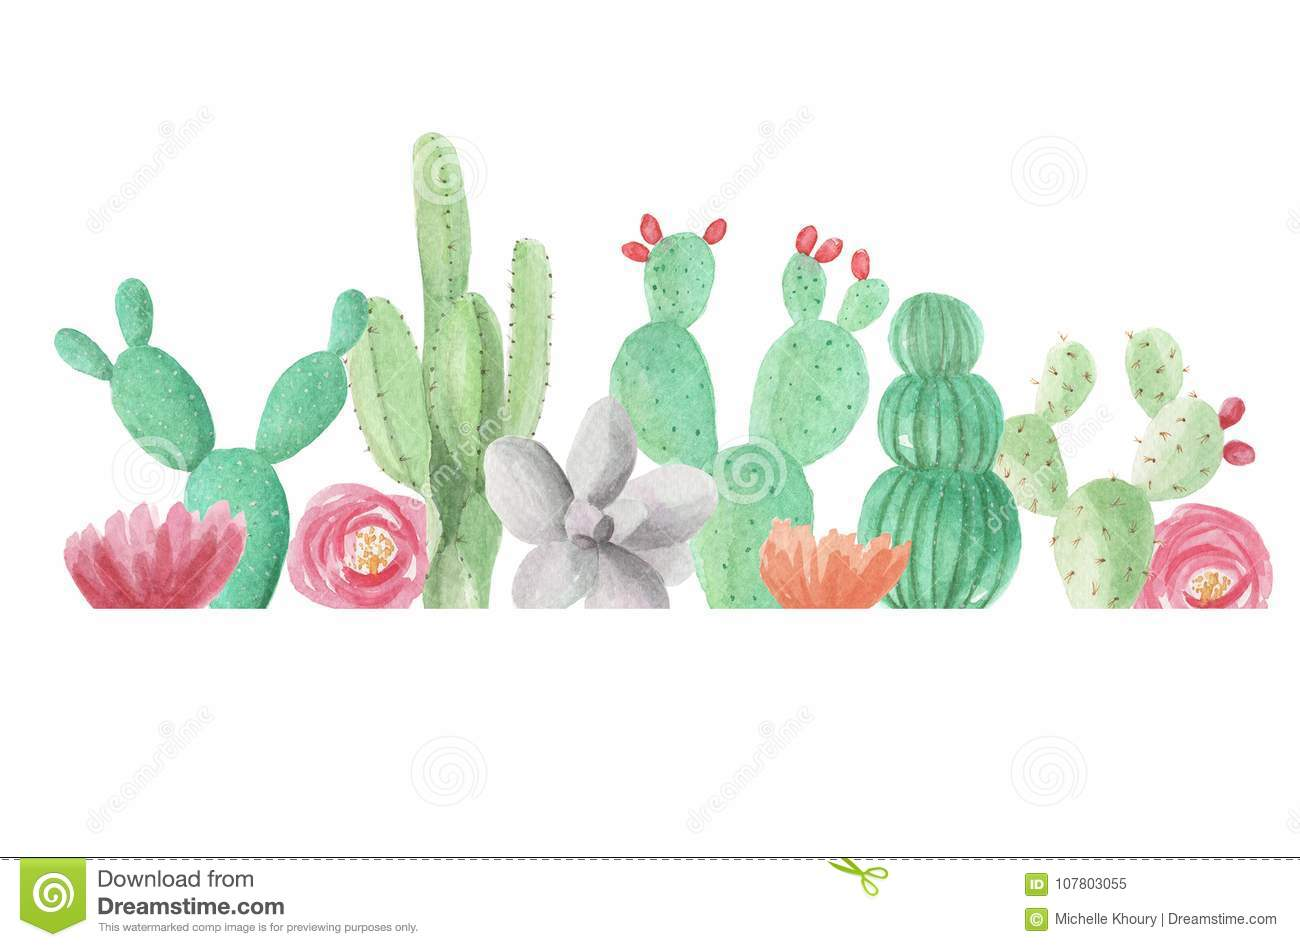 Free watercolor cactus clipart 3 » Clipart Station.